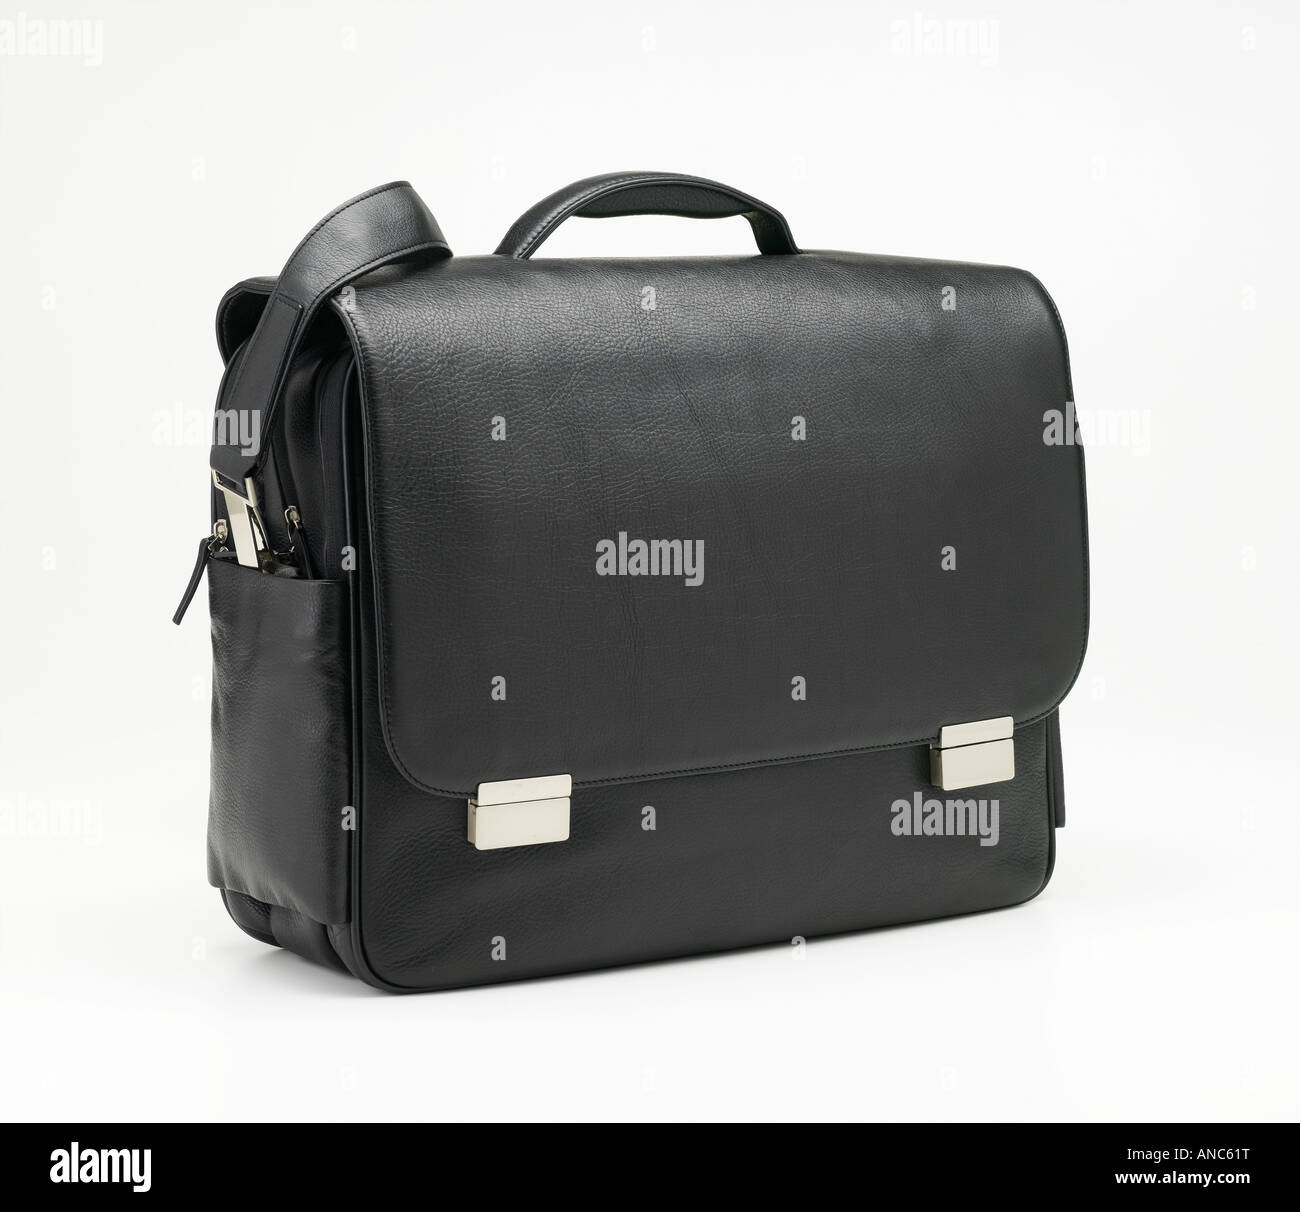 small suitcase carrying case buisness 24 hours skin hide black elegant work - Stock Image